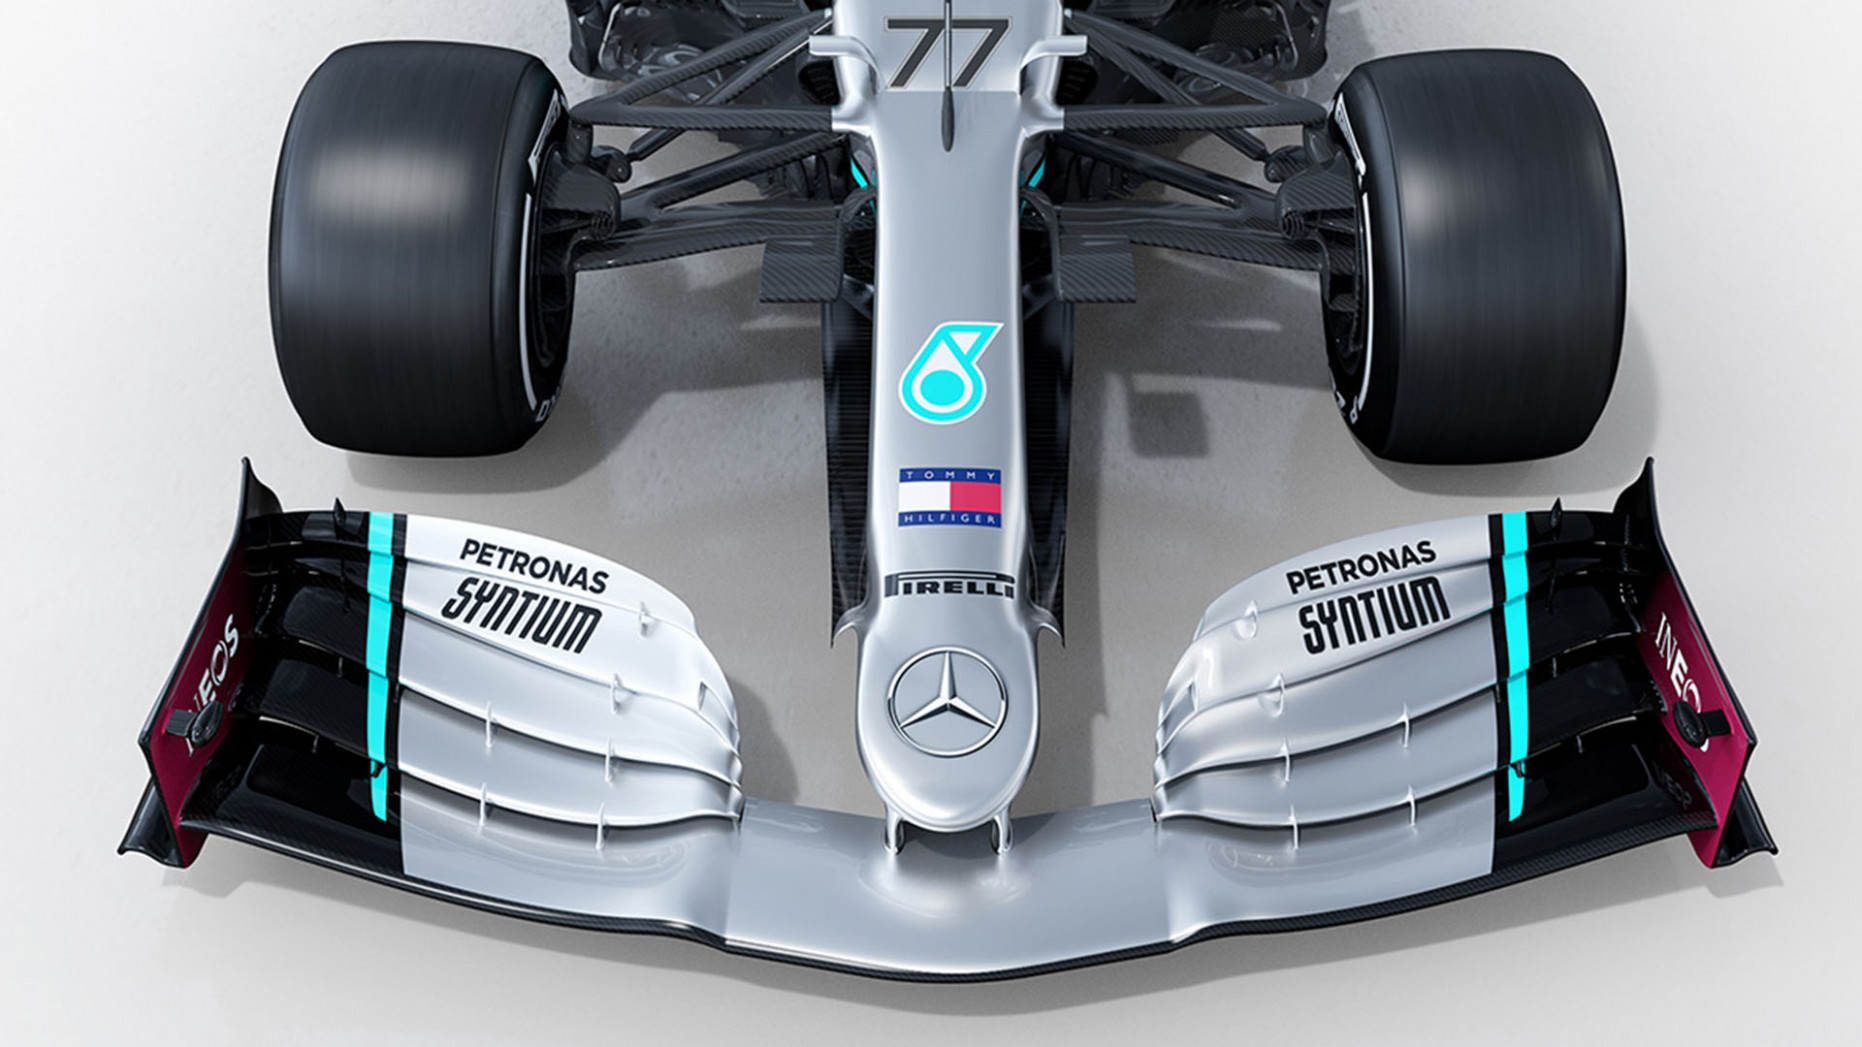 Mercedes' 6 F6 car: Our first take on Lewis Hamilton's W66